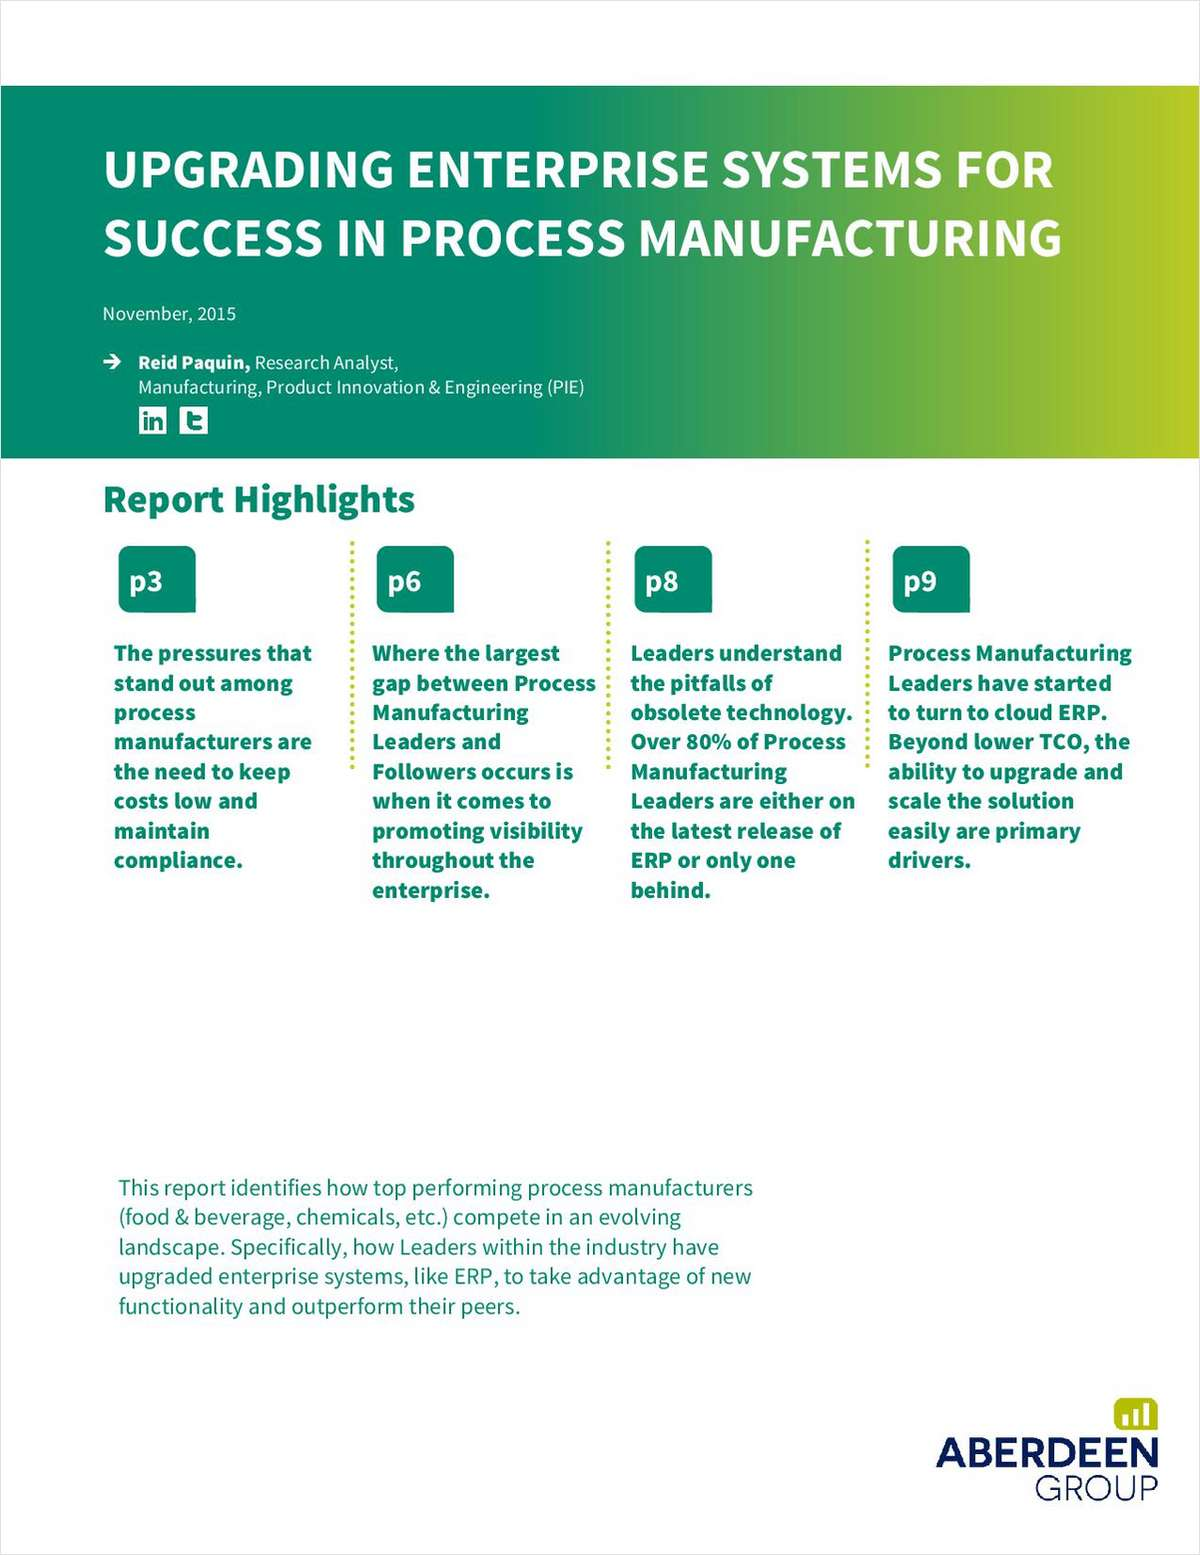 Upgrading Enterprise Systems for Success in Process Manufacturing